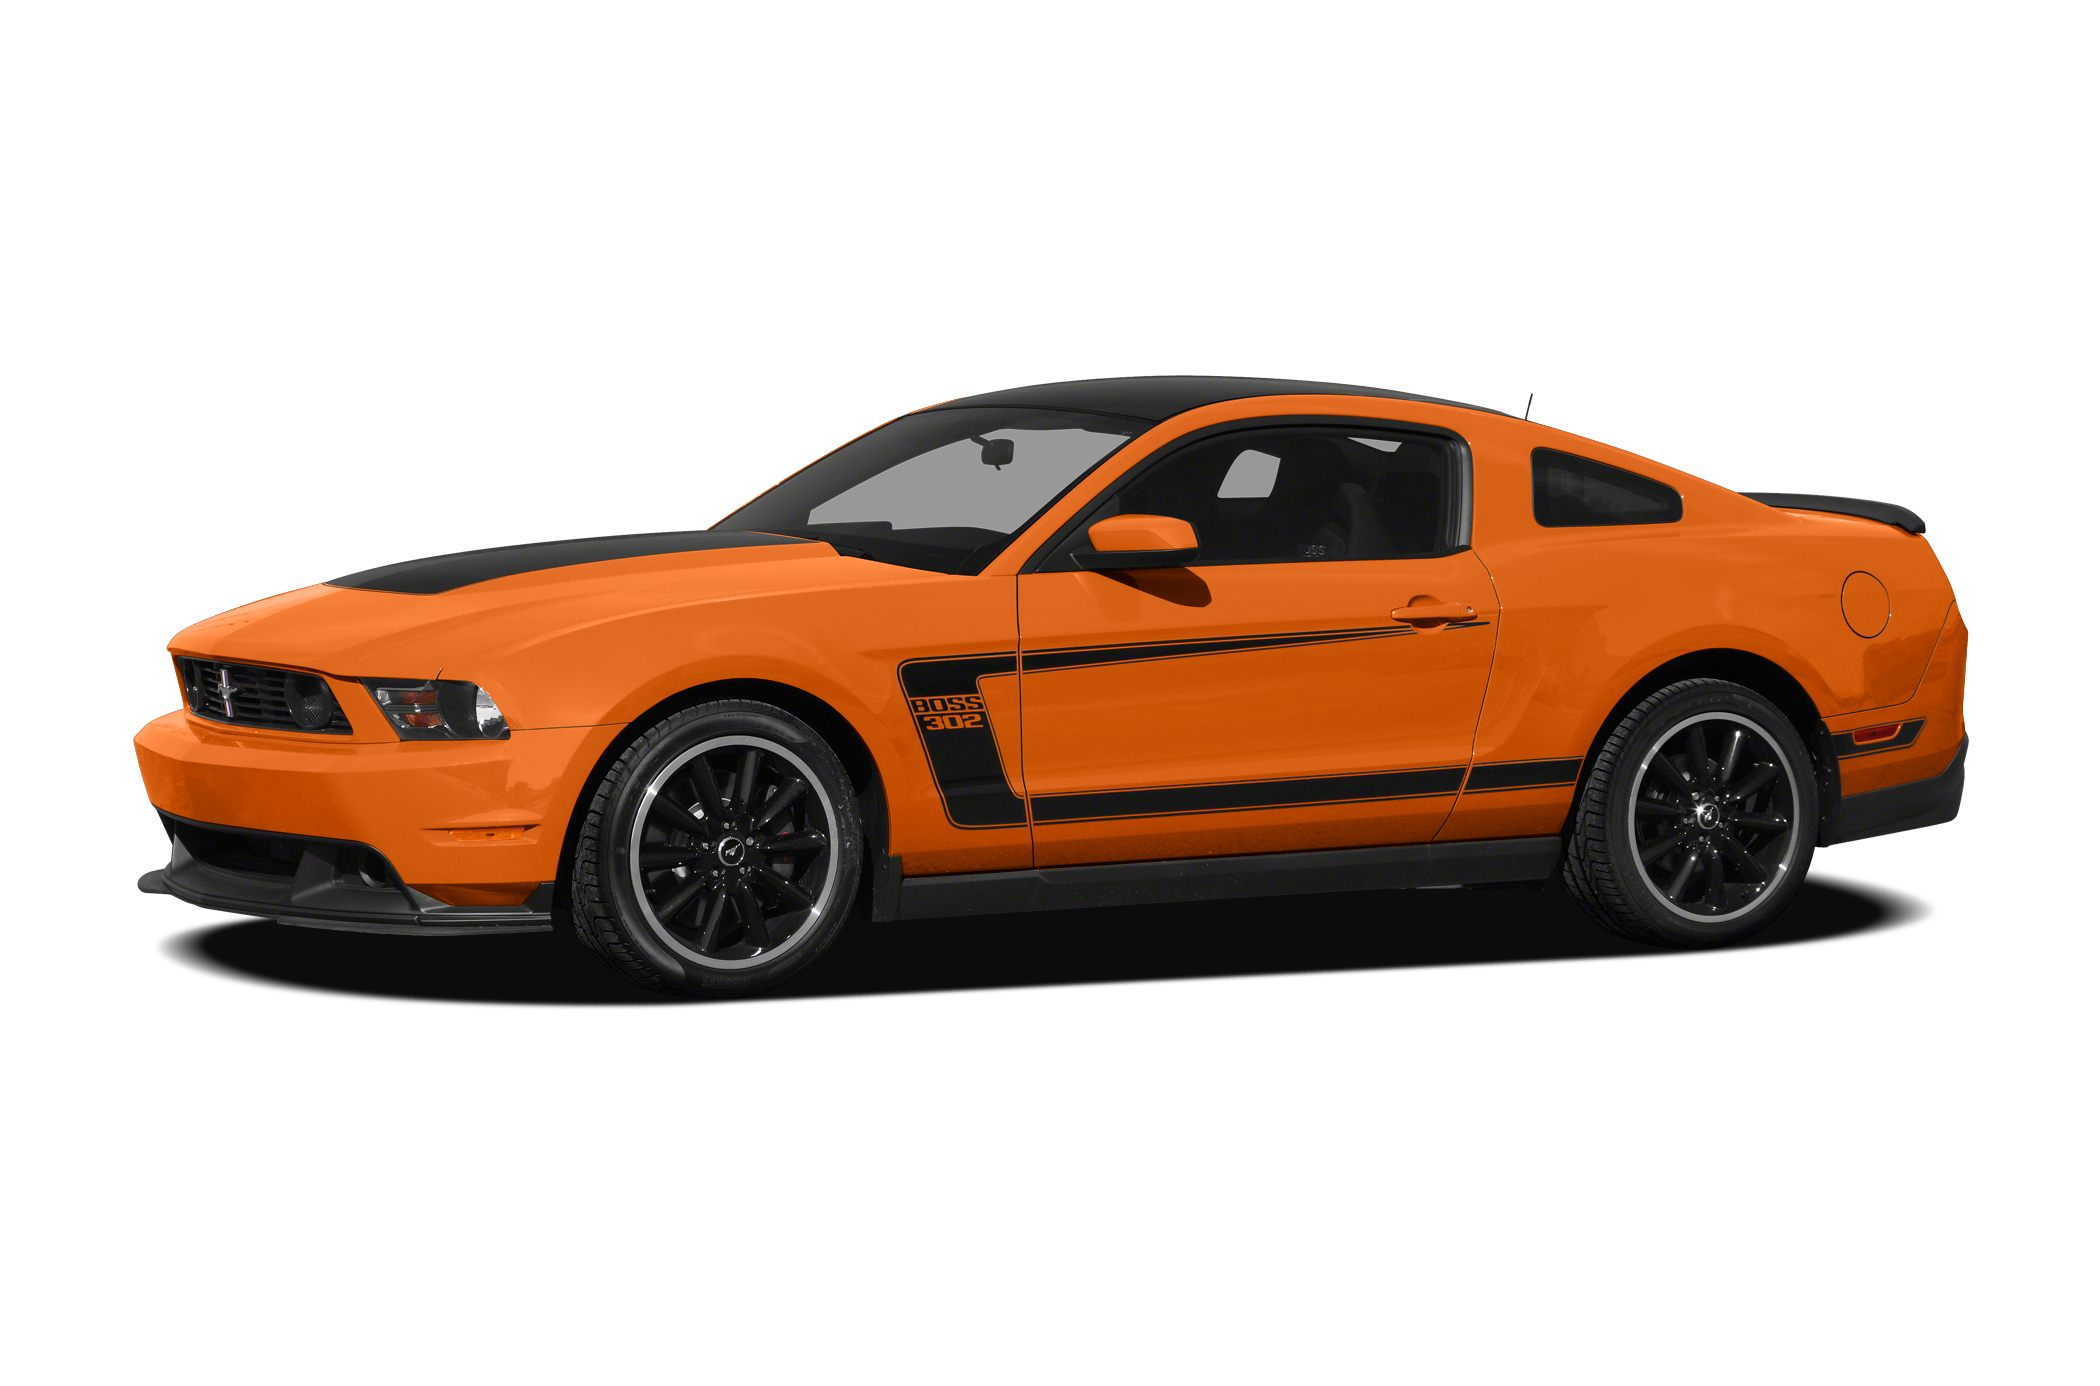 2012 Ford Mustang Boss 302 Coupe for sale in League City for $36,988 with 7,886 miles